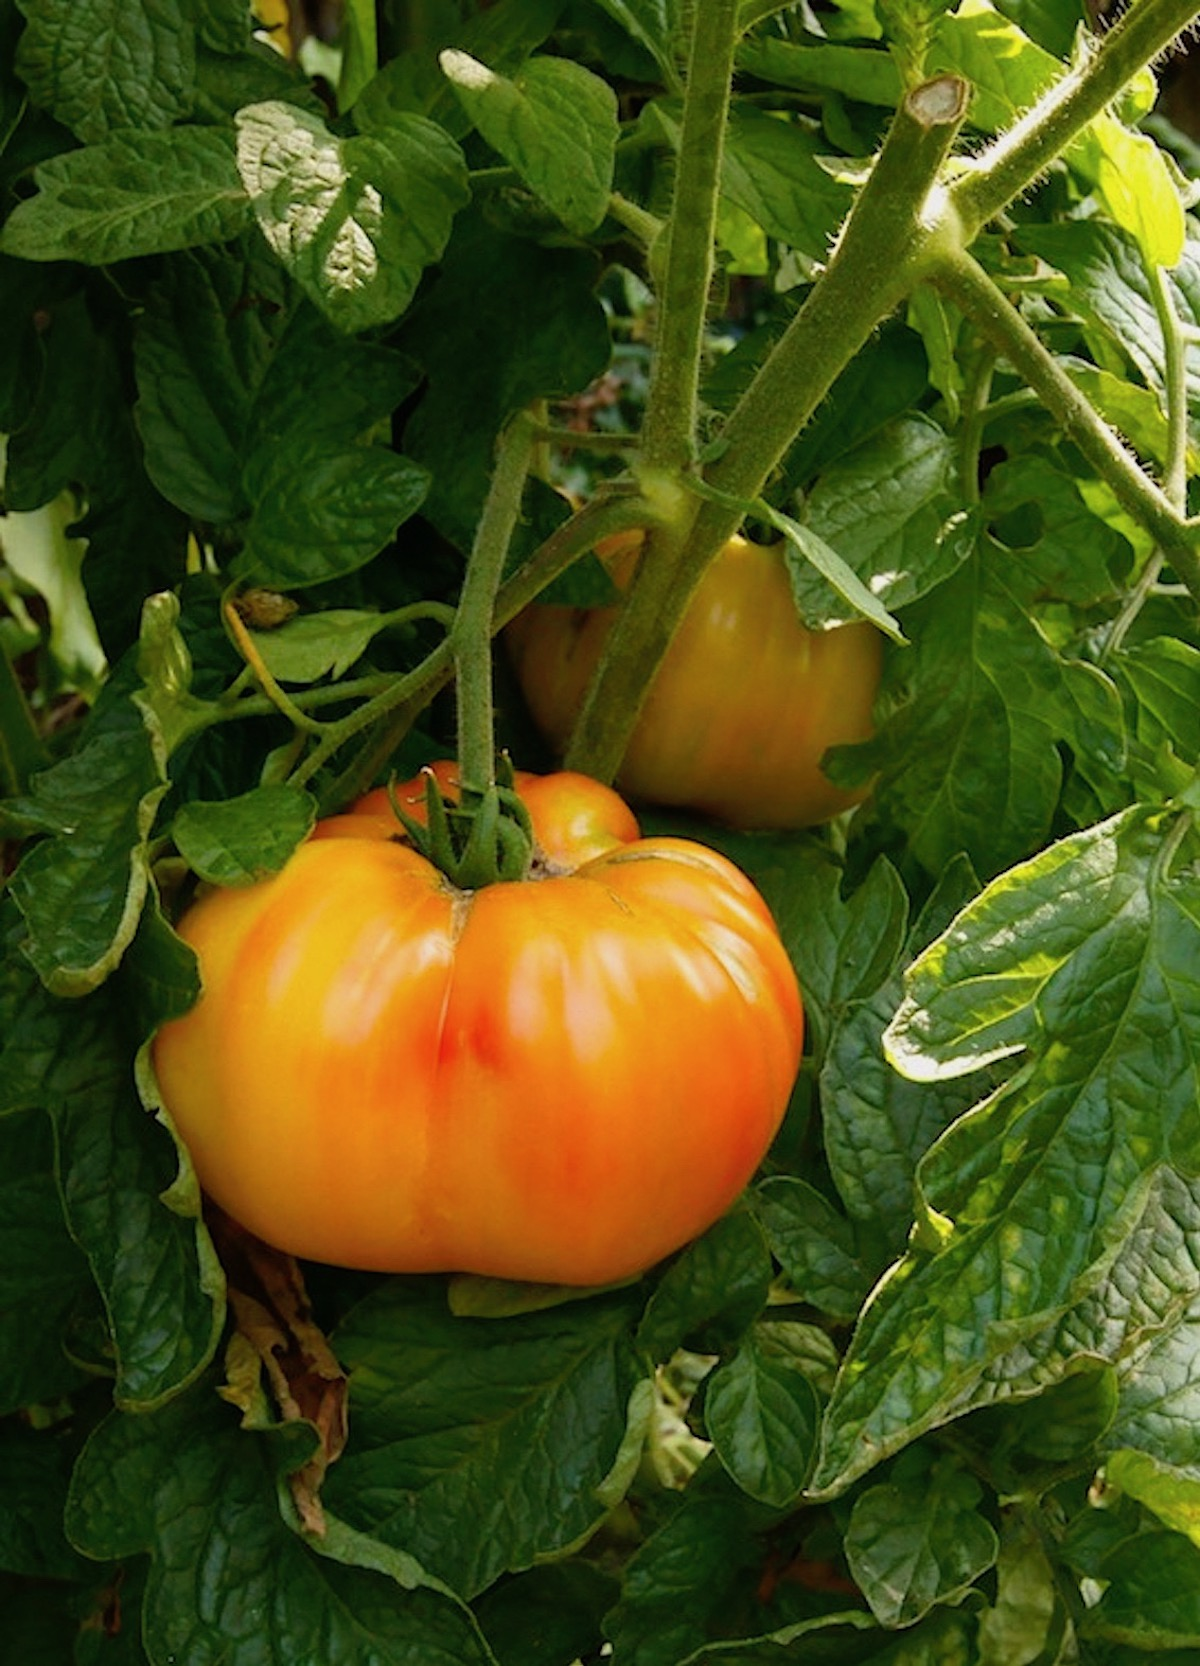 tomato growing on a vine